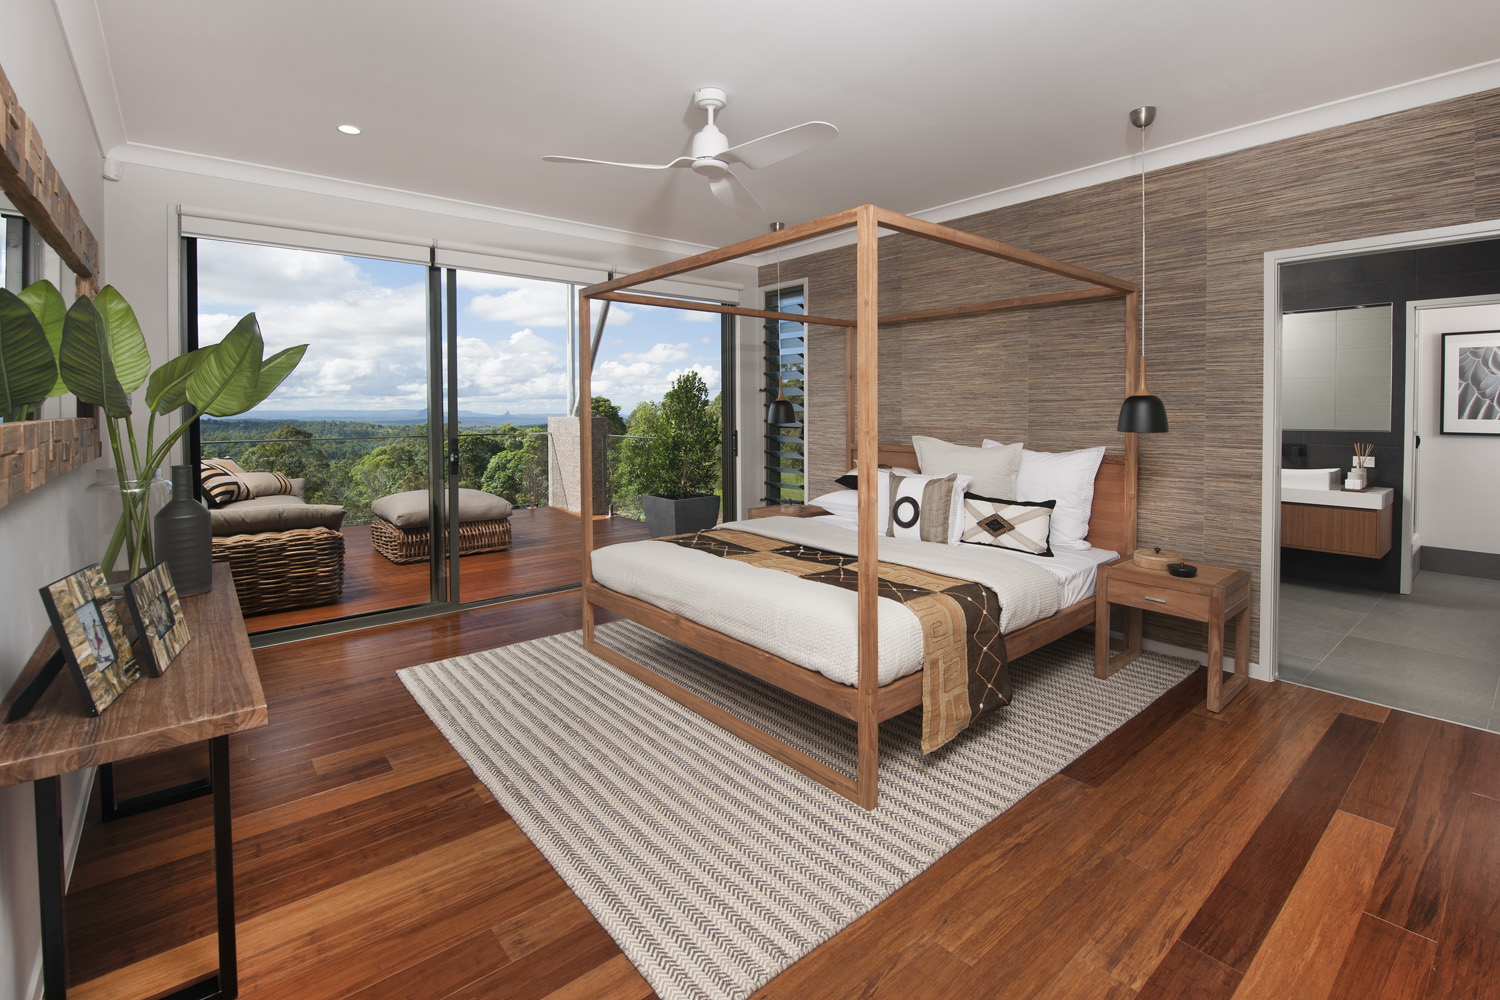 Master bedroom with ensuite and outdoor deck area with views of the beautiful hinterland (1)